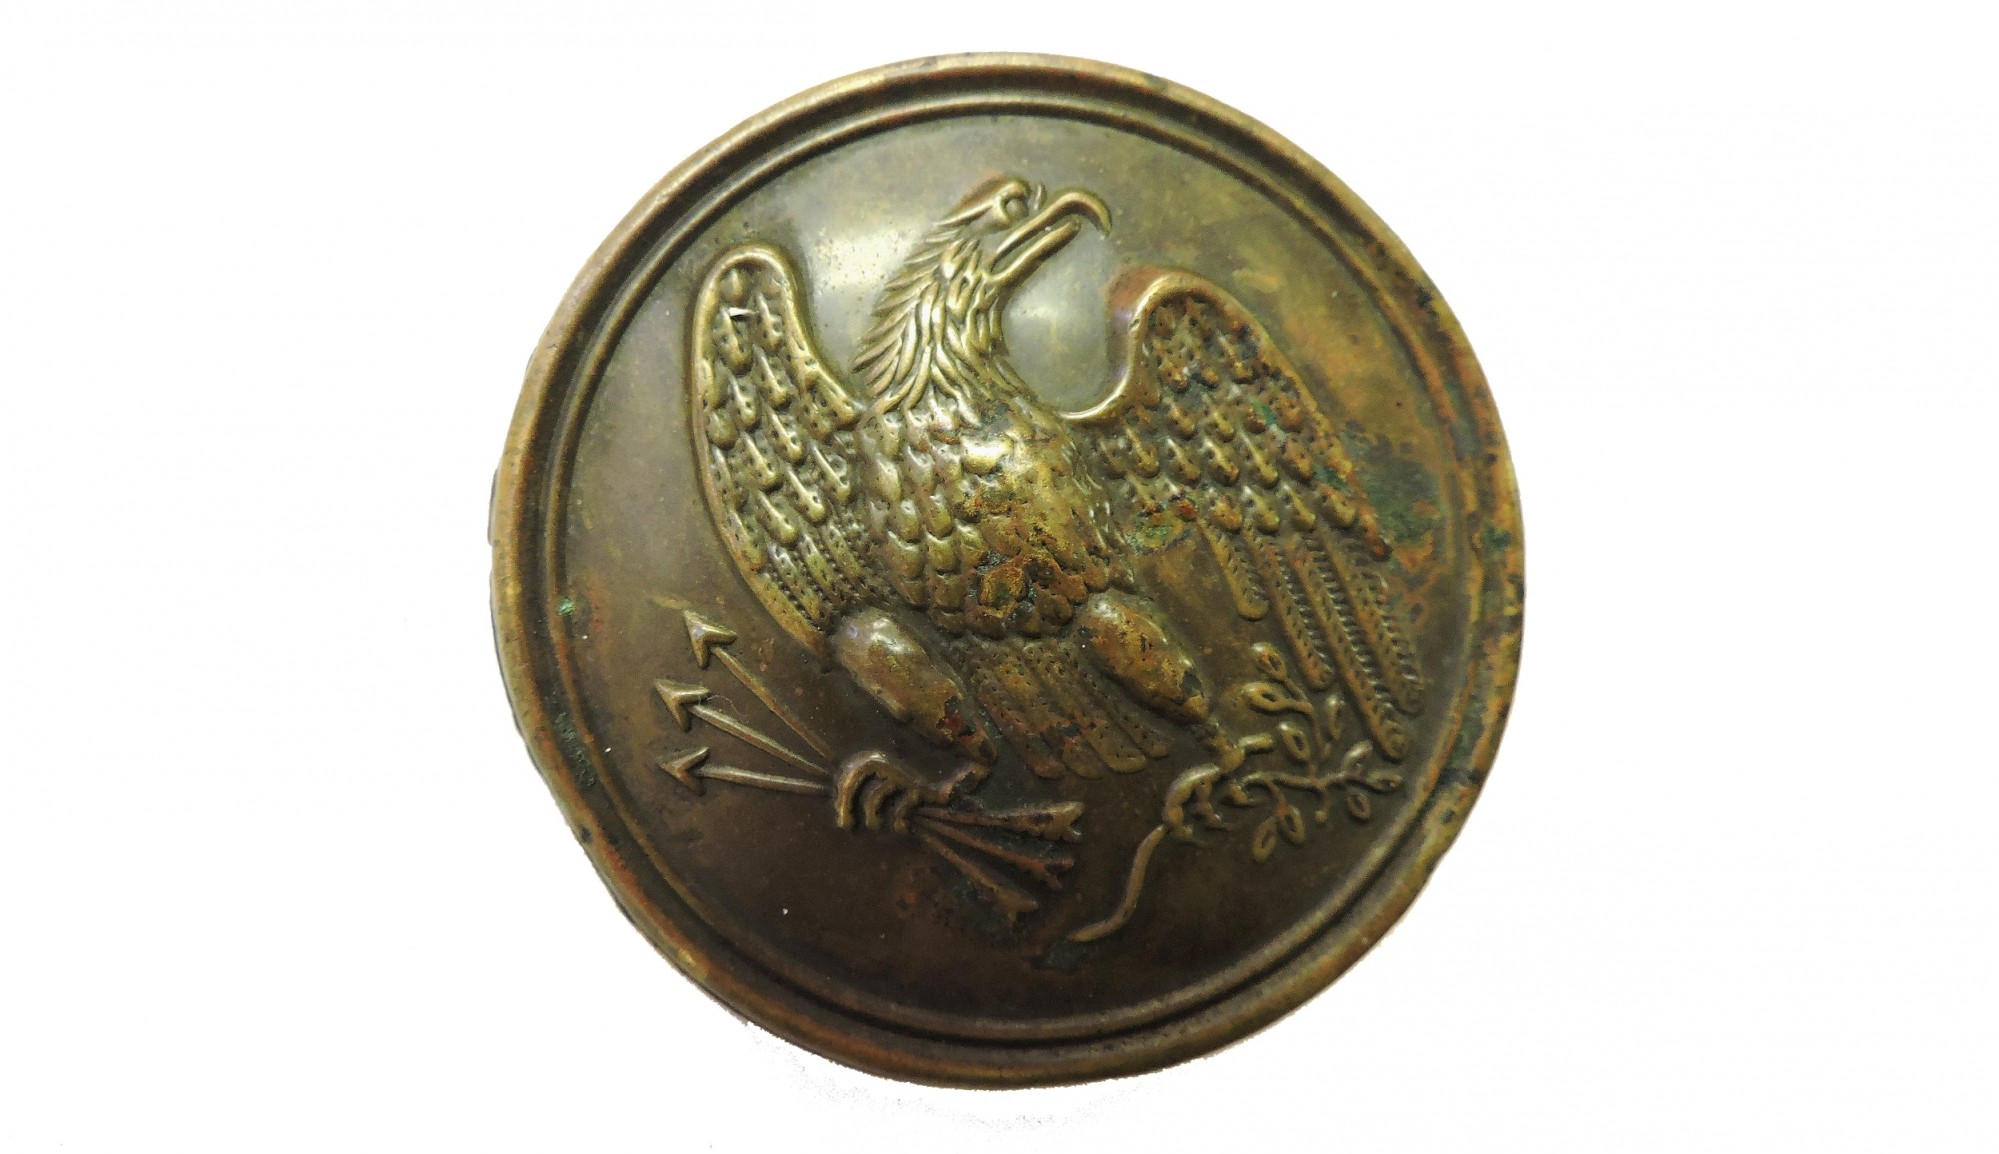 US PATTERN 1826 EAGLE BREAST PLATE, MAKER MARKED